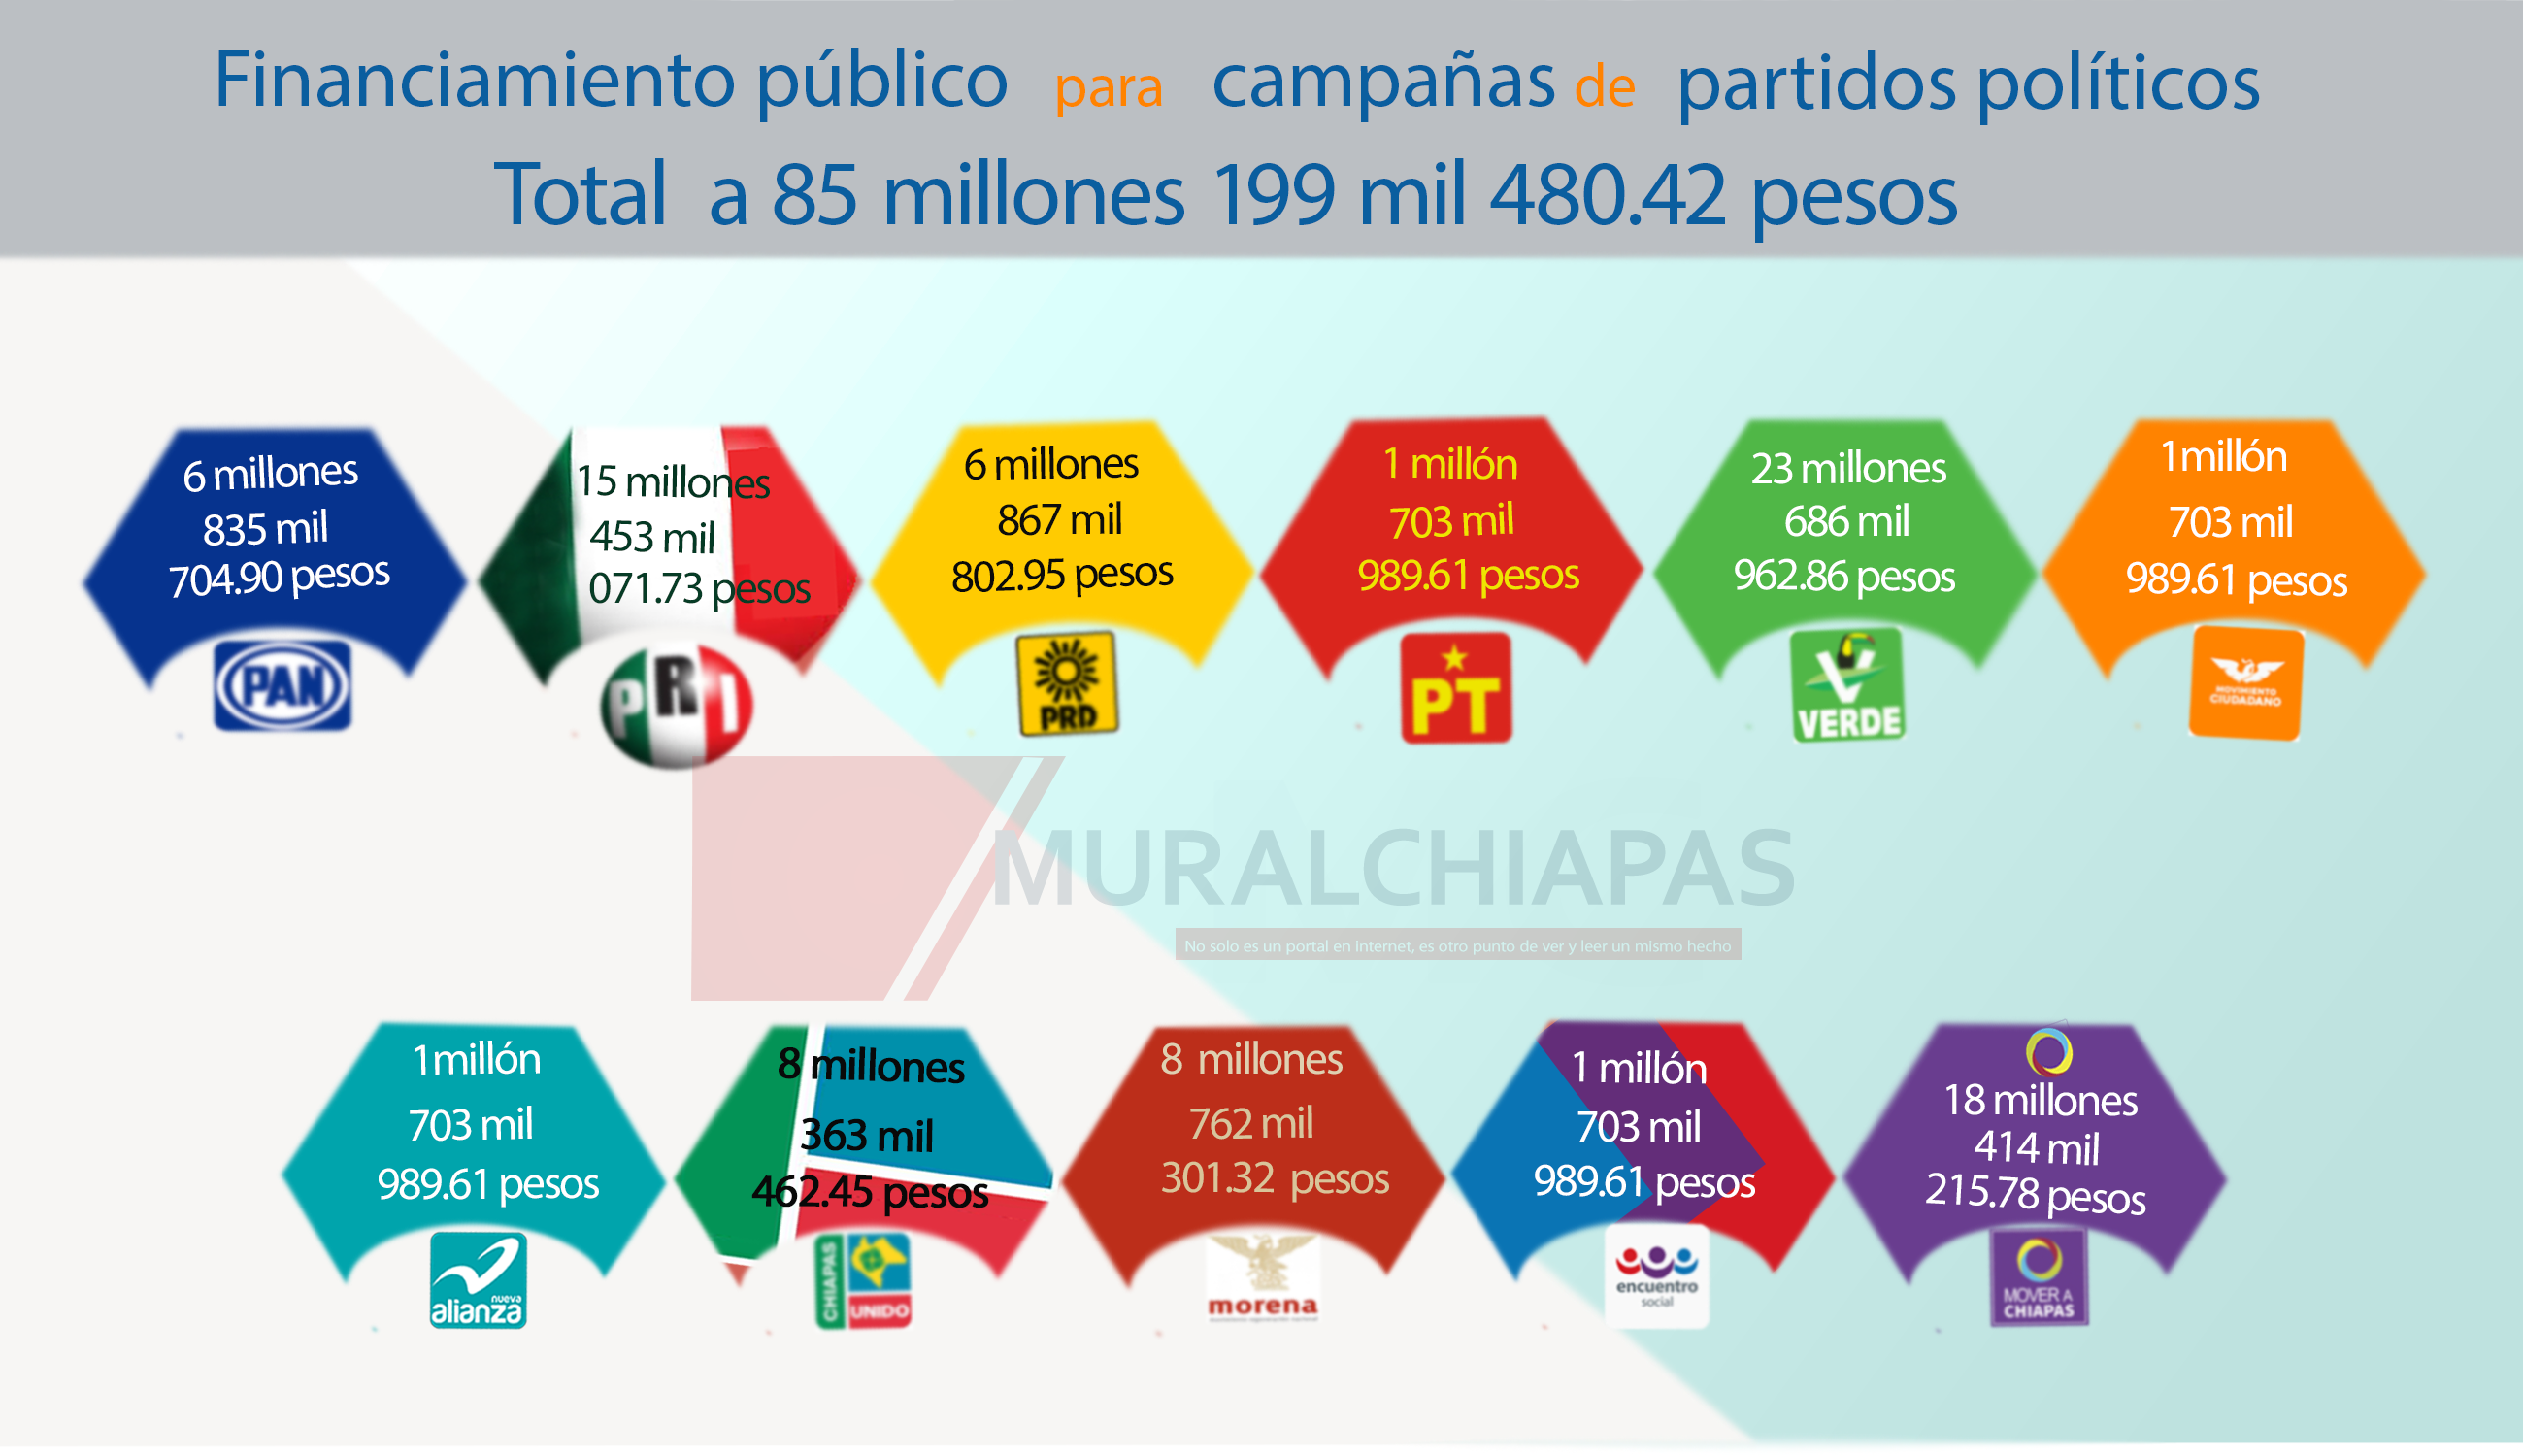 INFOGRAFIA FINANCIAMIENTO